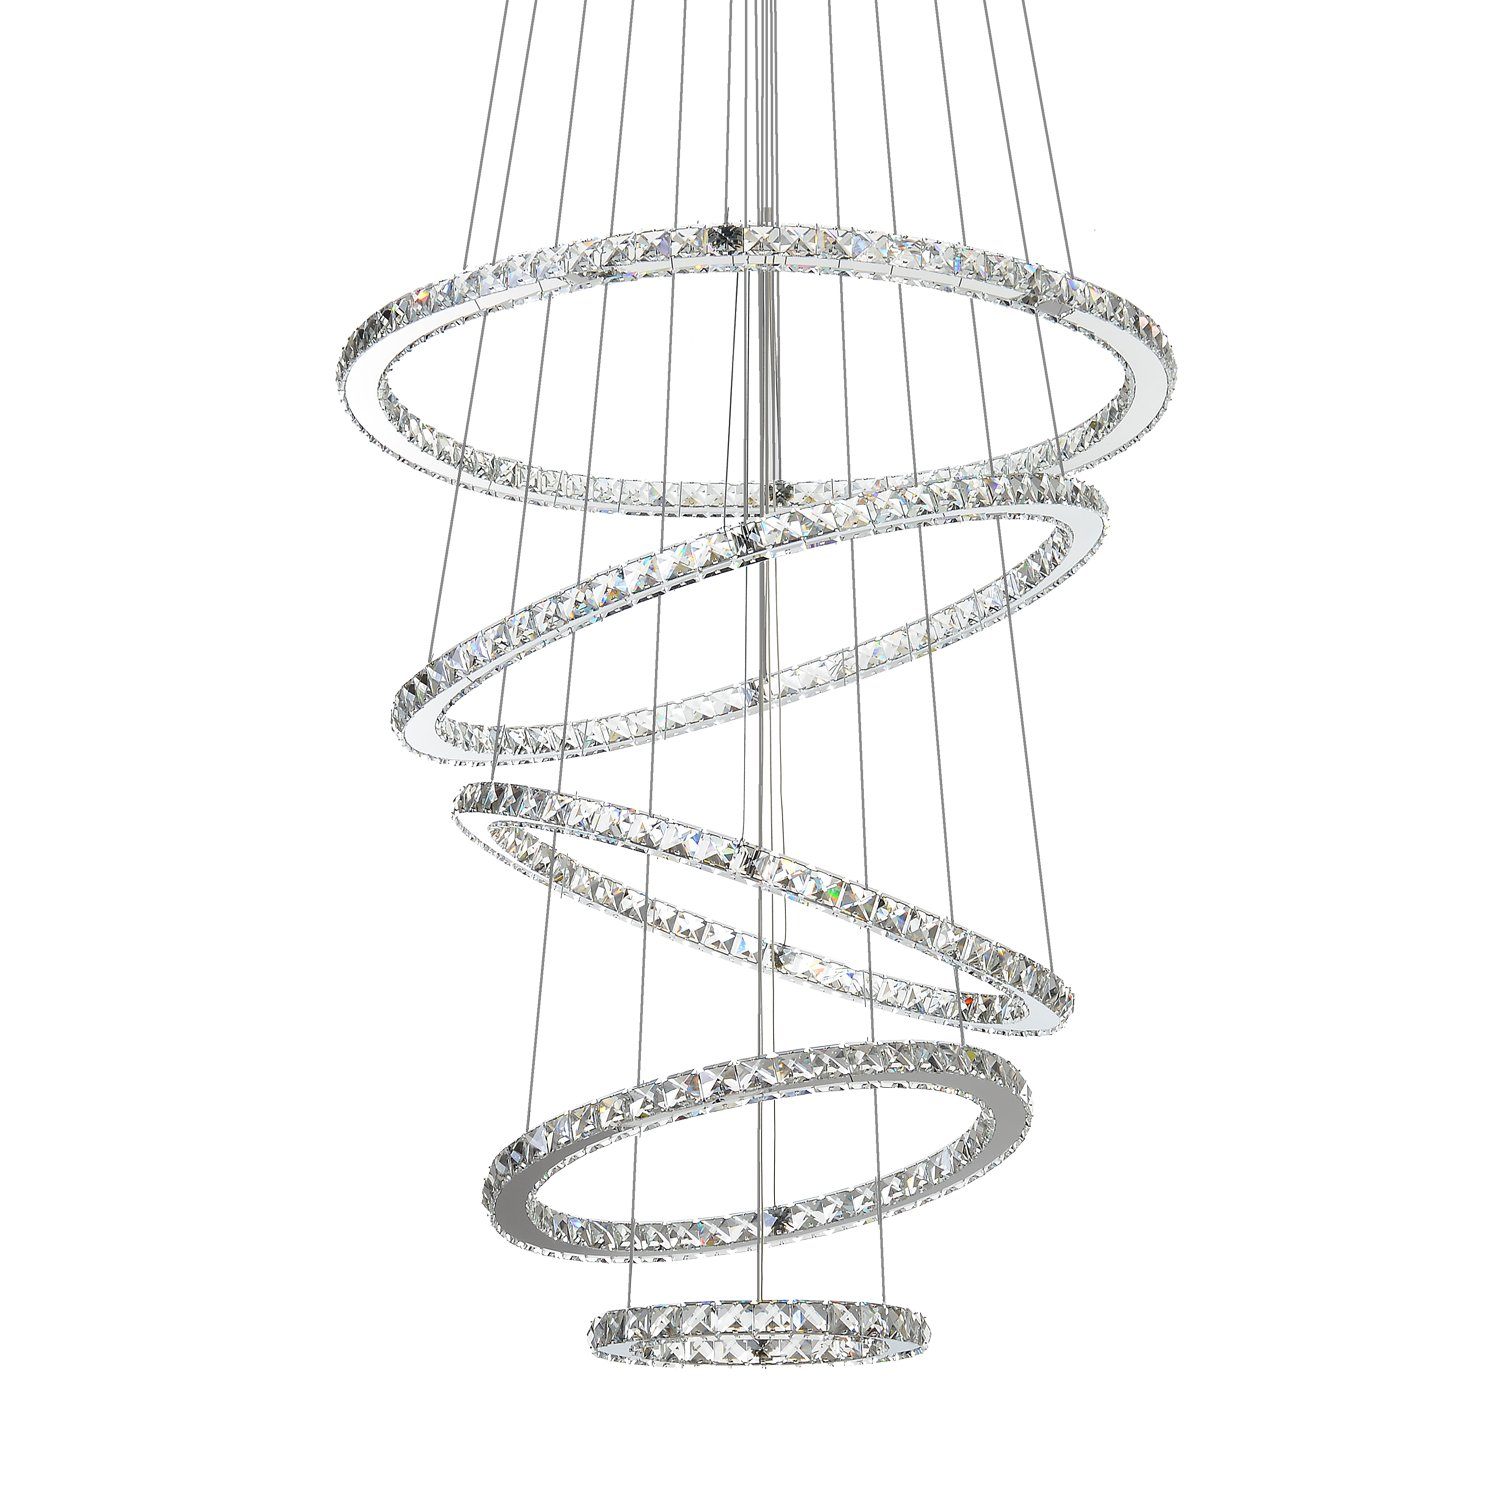 "MEEROSEE Crystal Chandeliers Modern LED Ceiling Lights Fixtures Pendant Lighting Dining Room Chandelier Contemporary Adjustable Stainless Steel Cable 5 Rings DIY Design D31.5""+27.6""+23.6""+19.7""+11.8"""